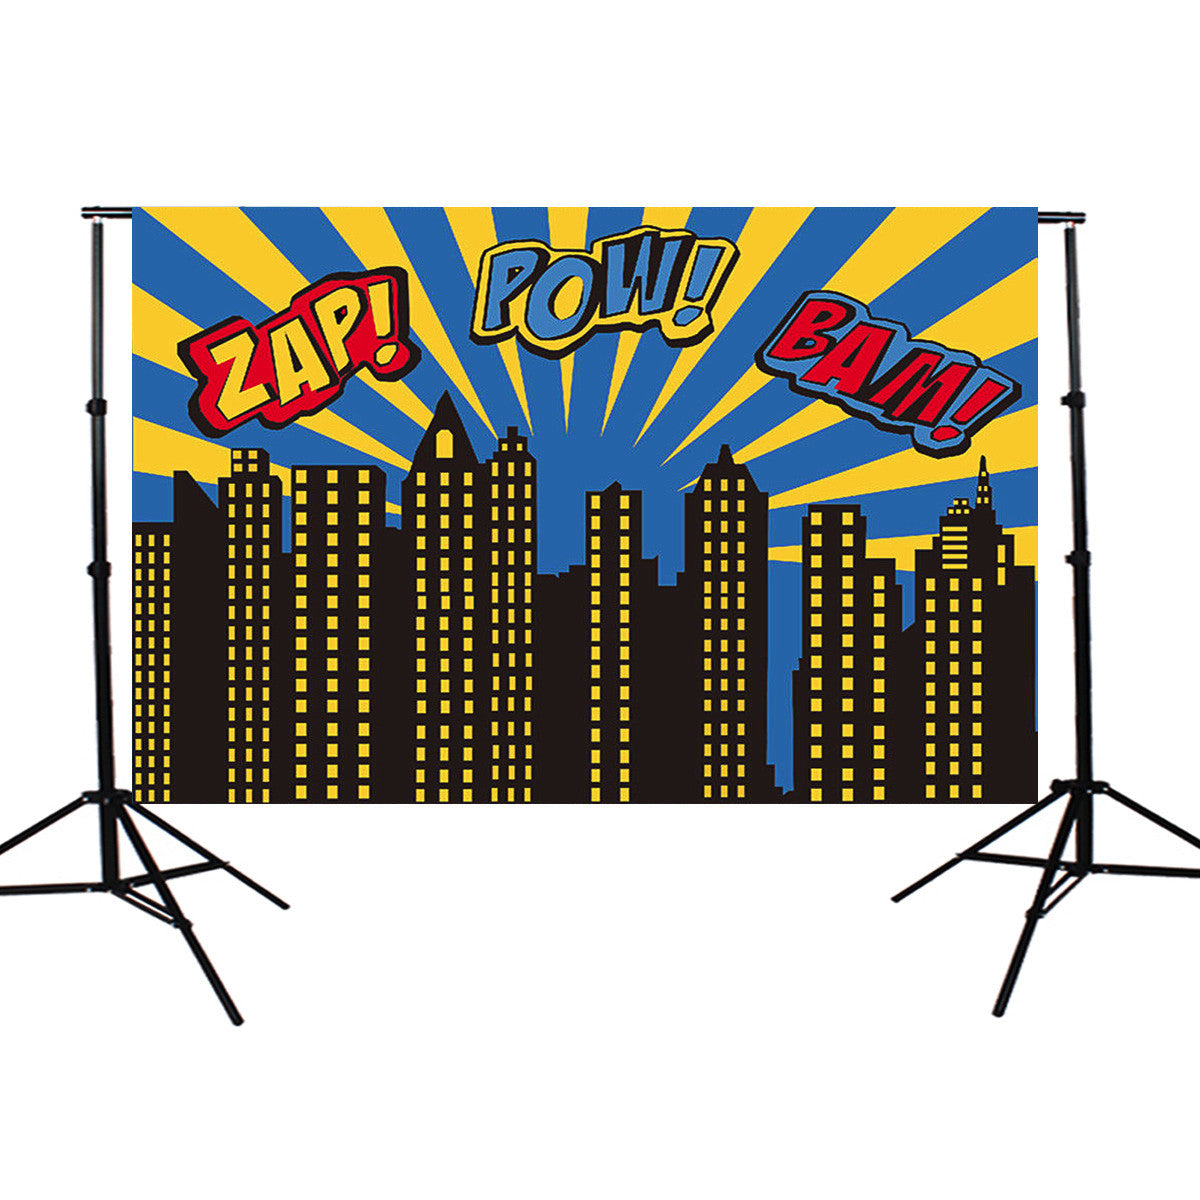 5x3ft Comic Building Theme Vinyl  Photography Background Backdrop for Studio Photo